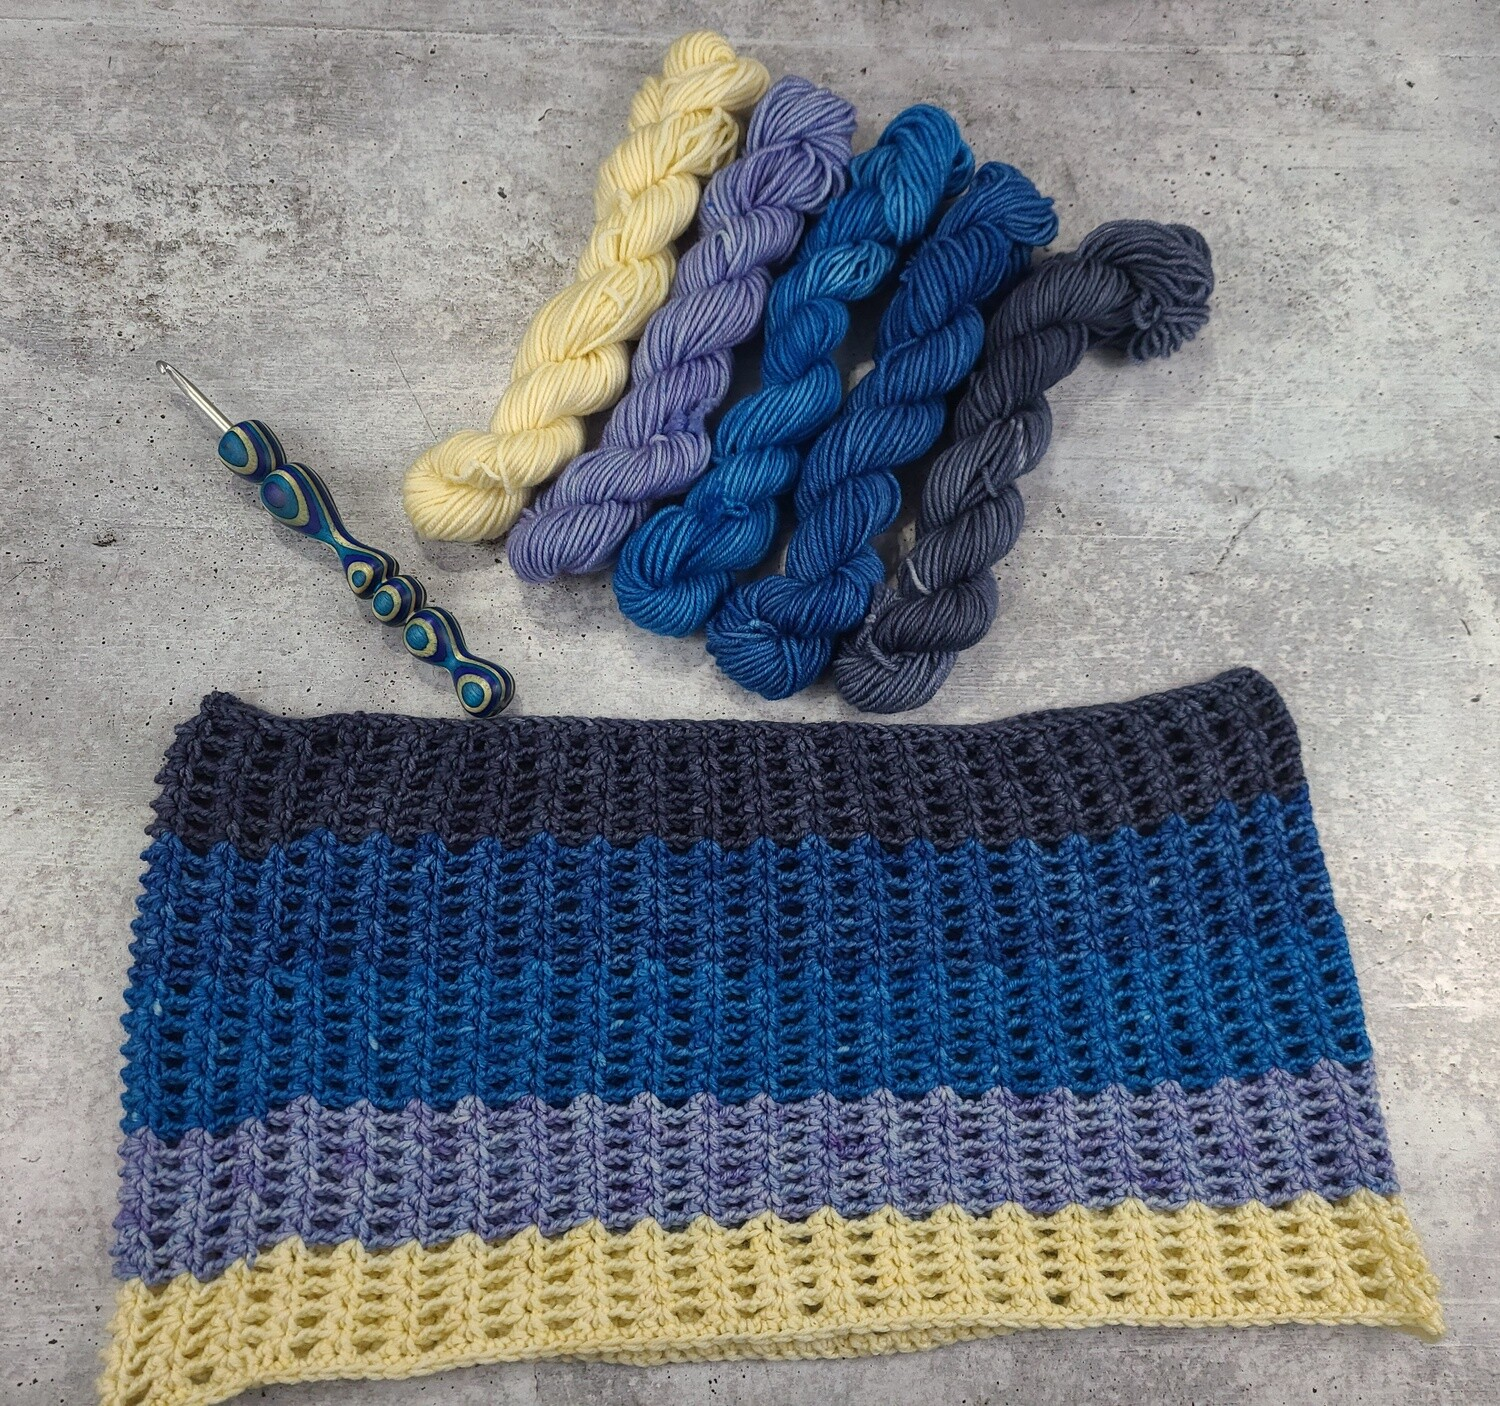 Frosted Sky Cowl Crochet Kit - Ready to Ship